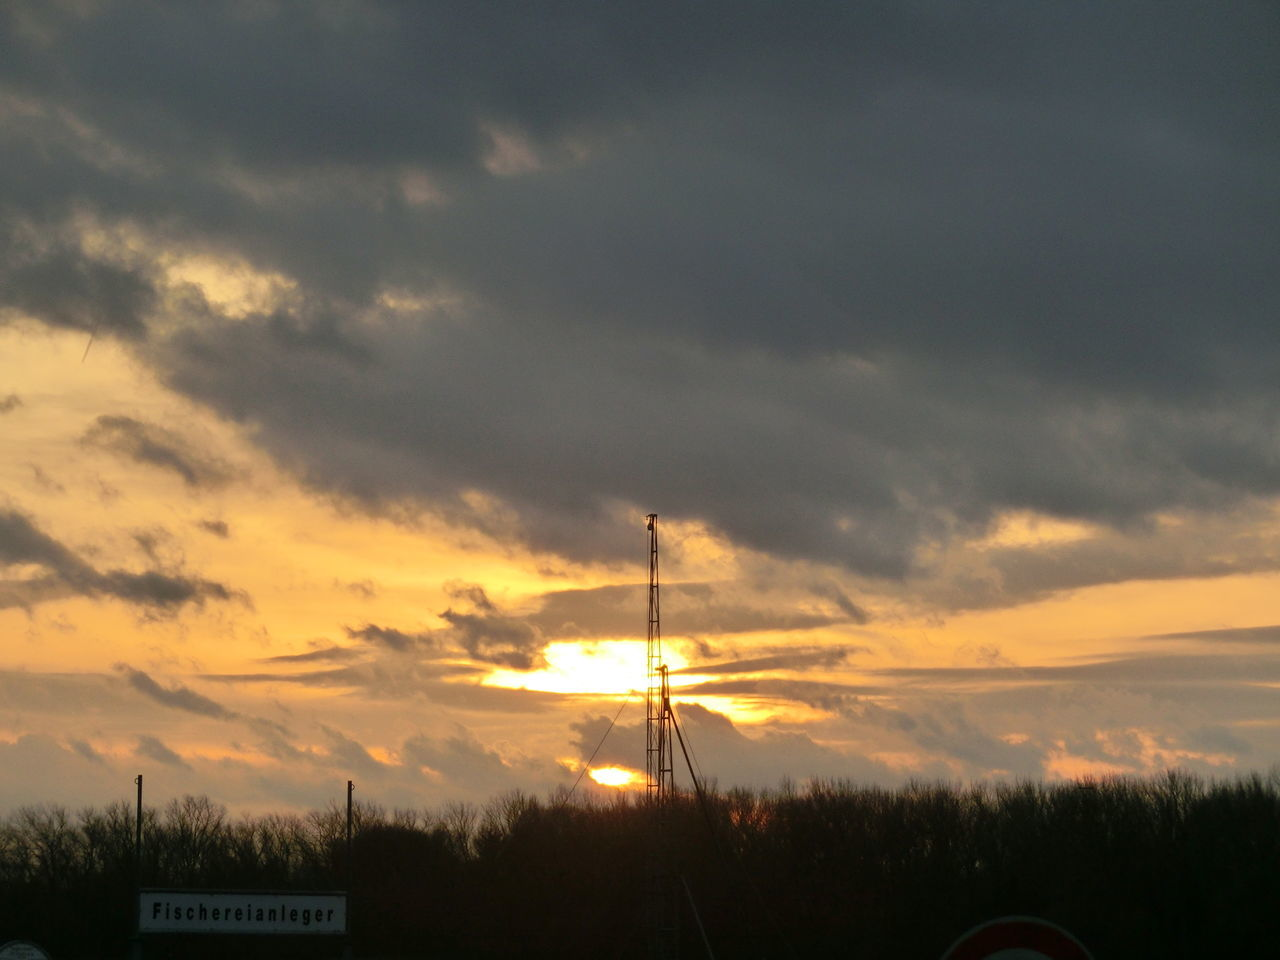 sunset, sky, cloud - sky, no people, tranquility, scenics, silhouette, nature, outdoors, beauty in nature, tree, architecture, day, windmill, industrial windmill